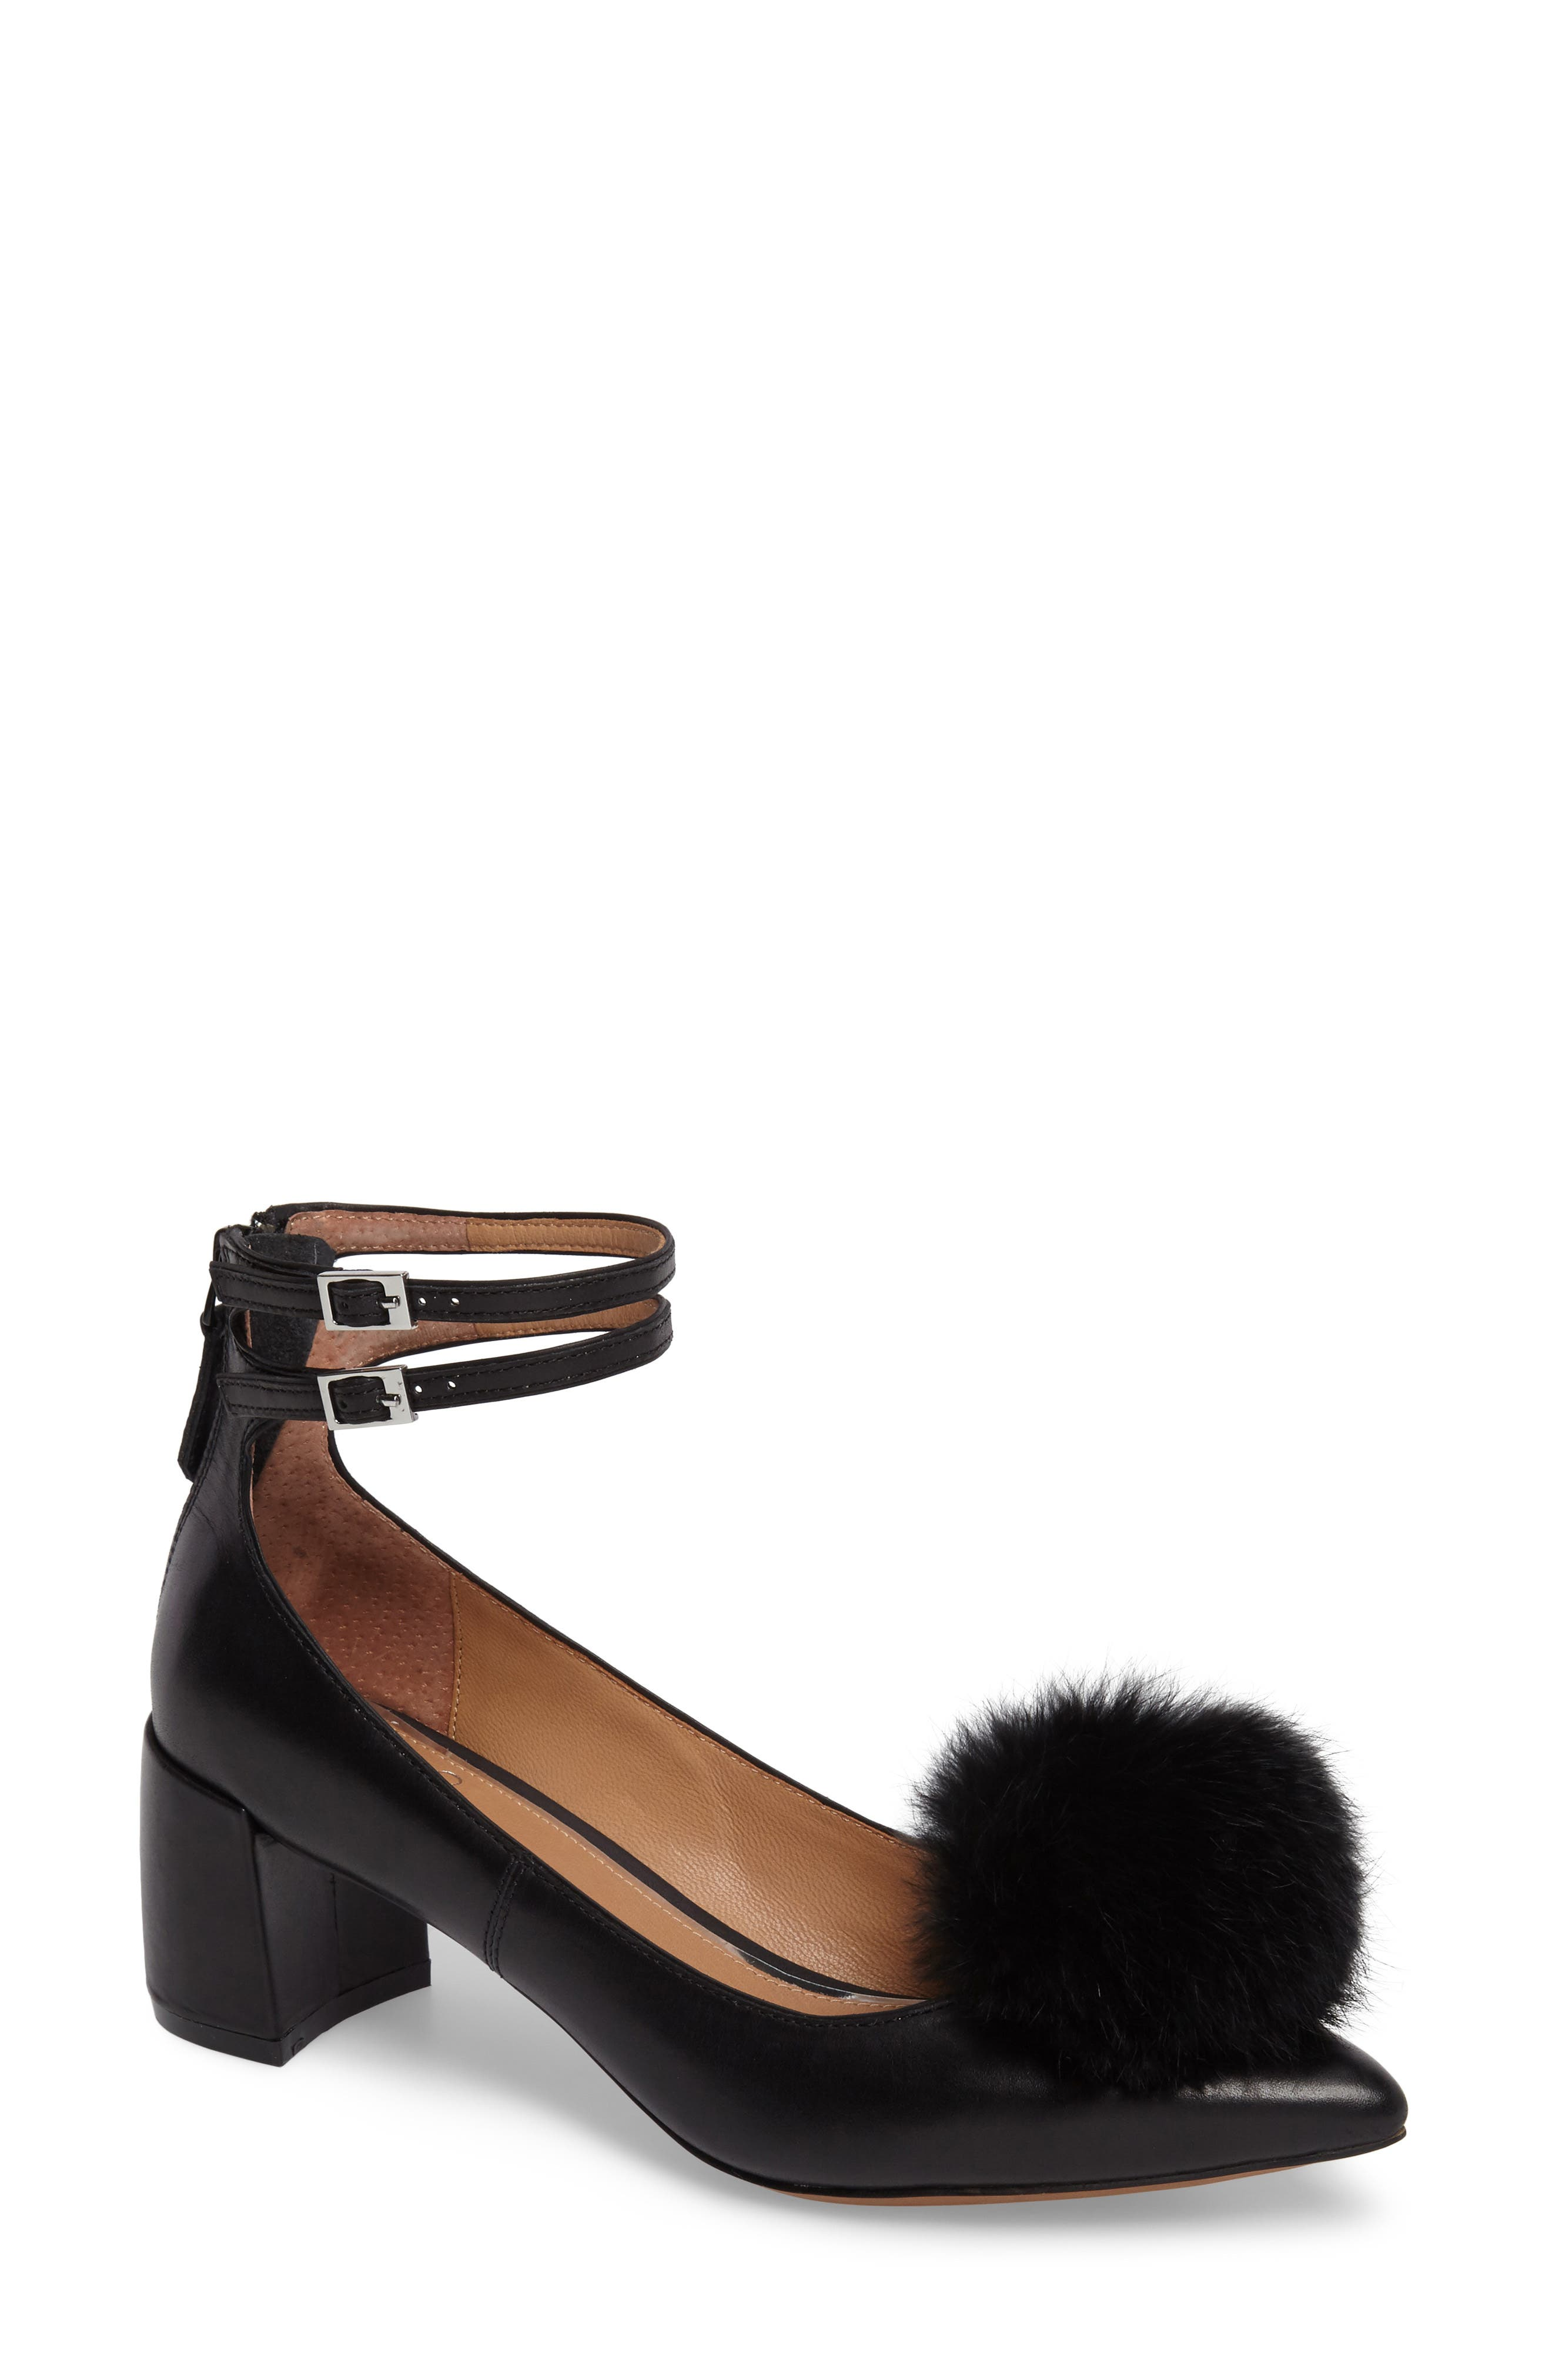 Linea Paolo Nadine Ankle Strap Pump (Women)